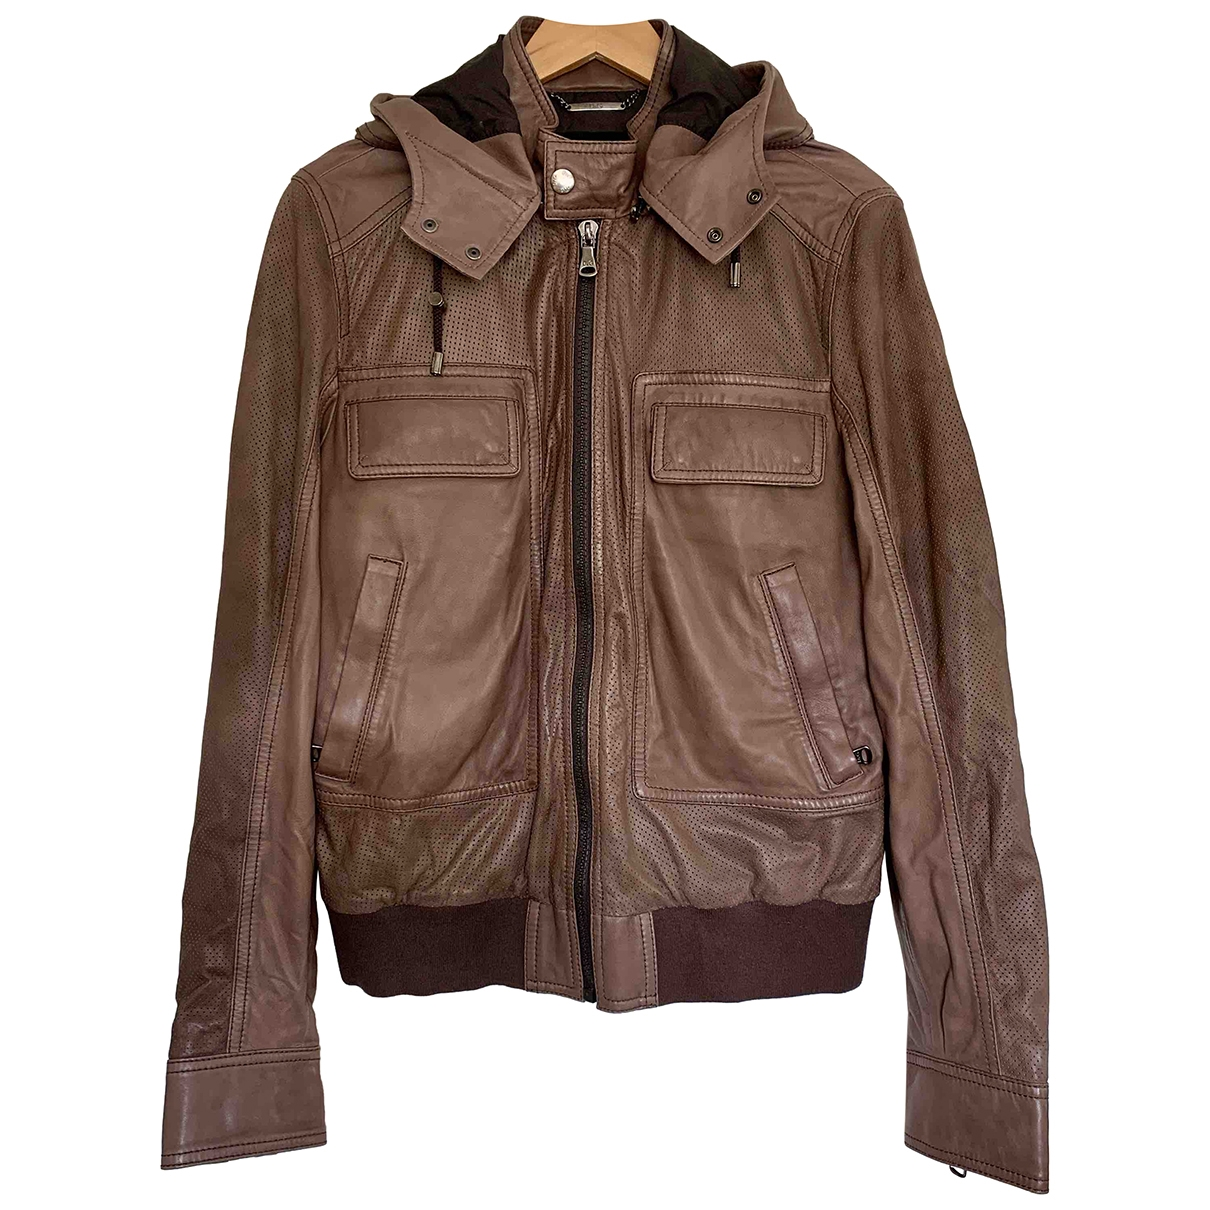 D&g \N Brown Leather jacket  for Men 50 IT